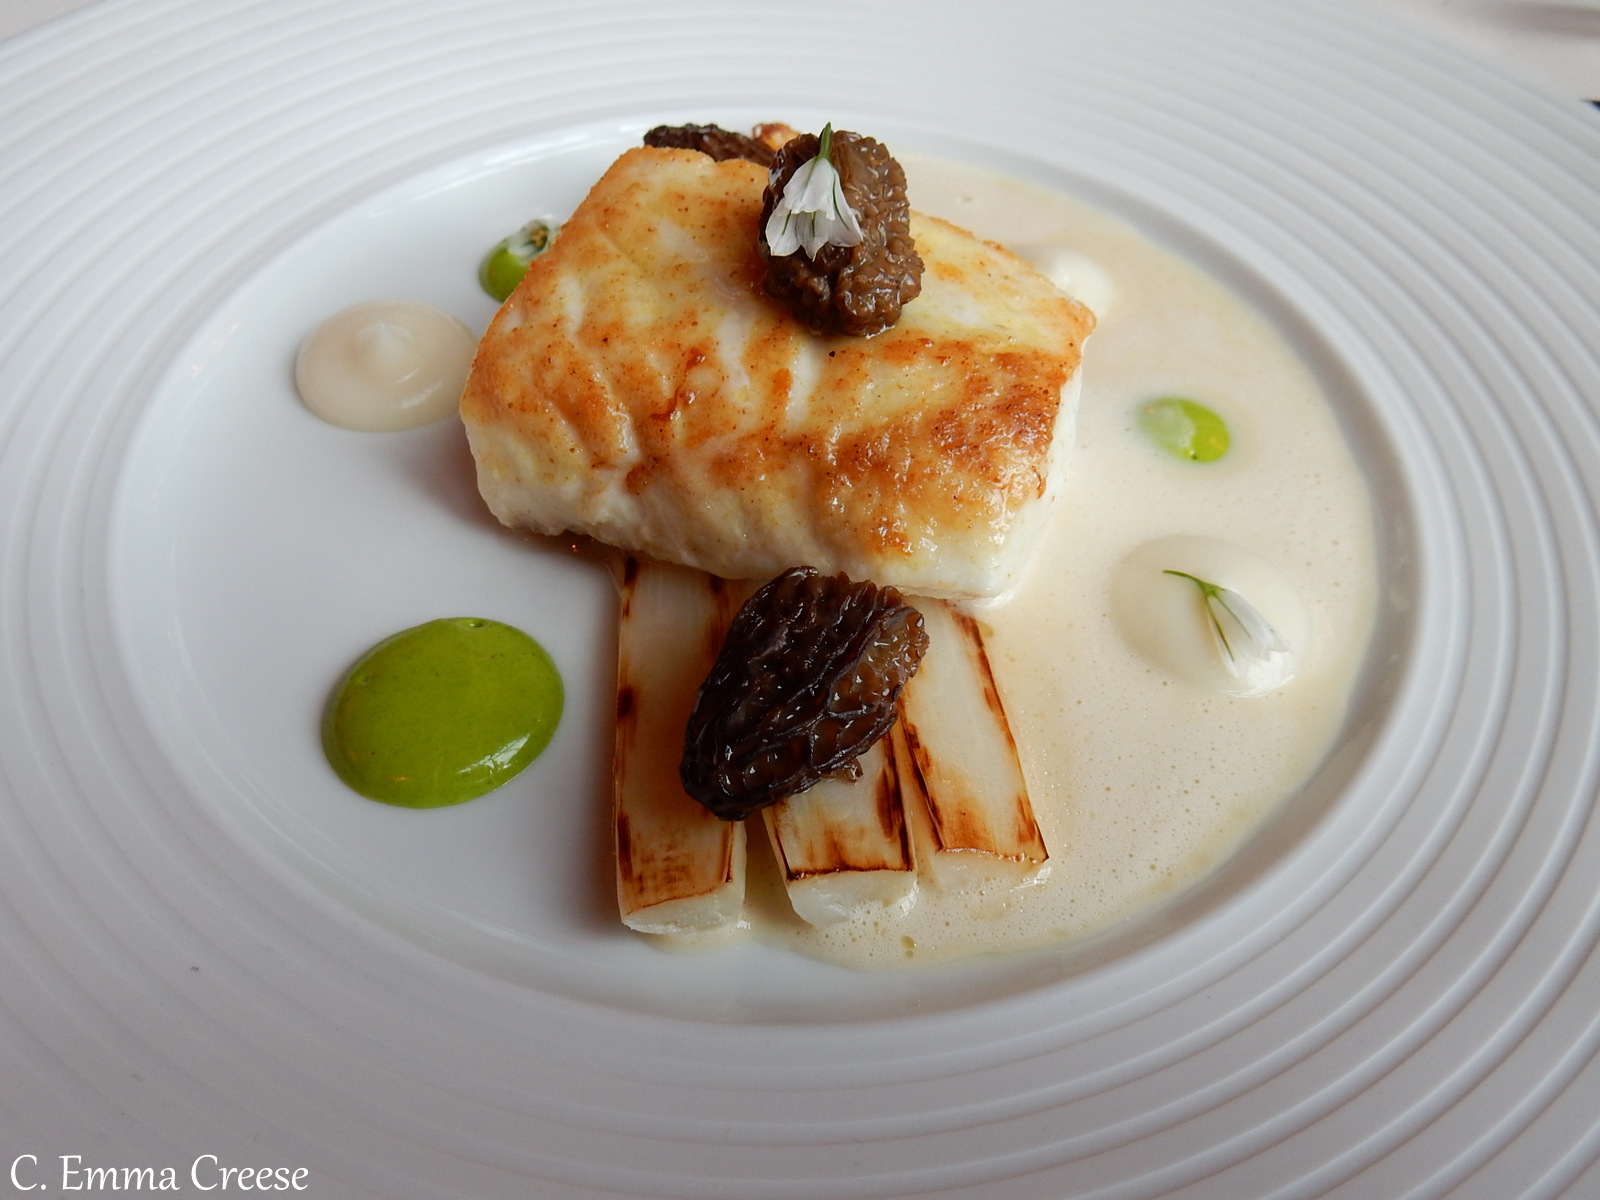 Luxury London Restaurant Review The Ritz Adventures of a London Kiwi